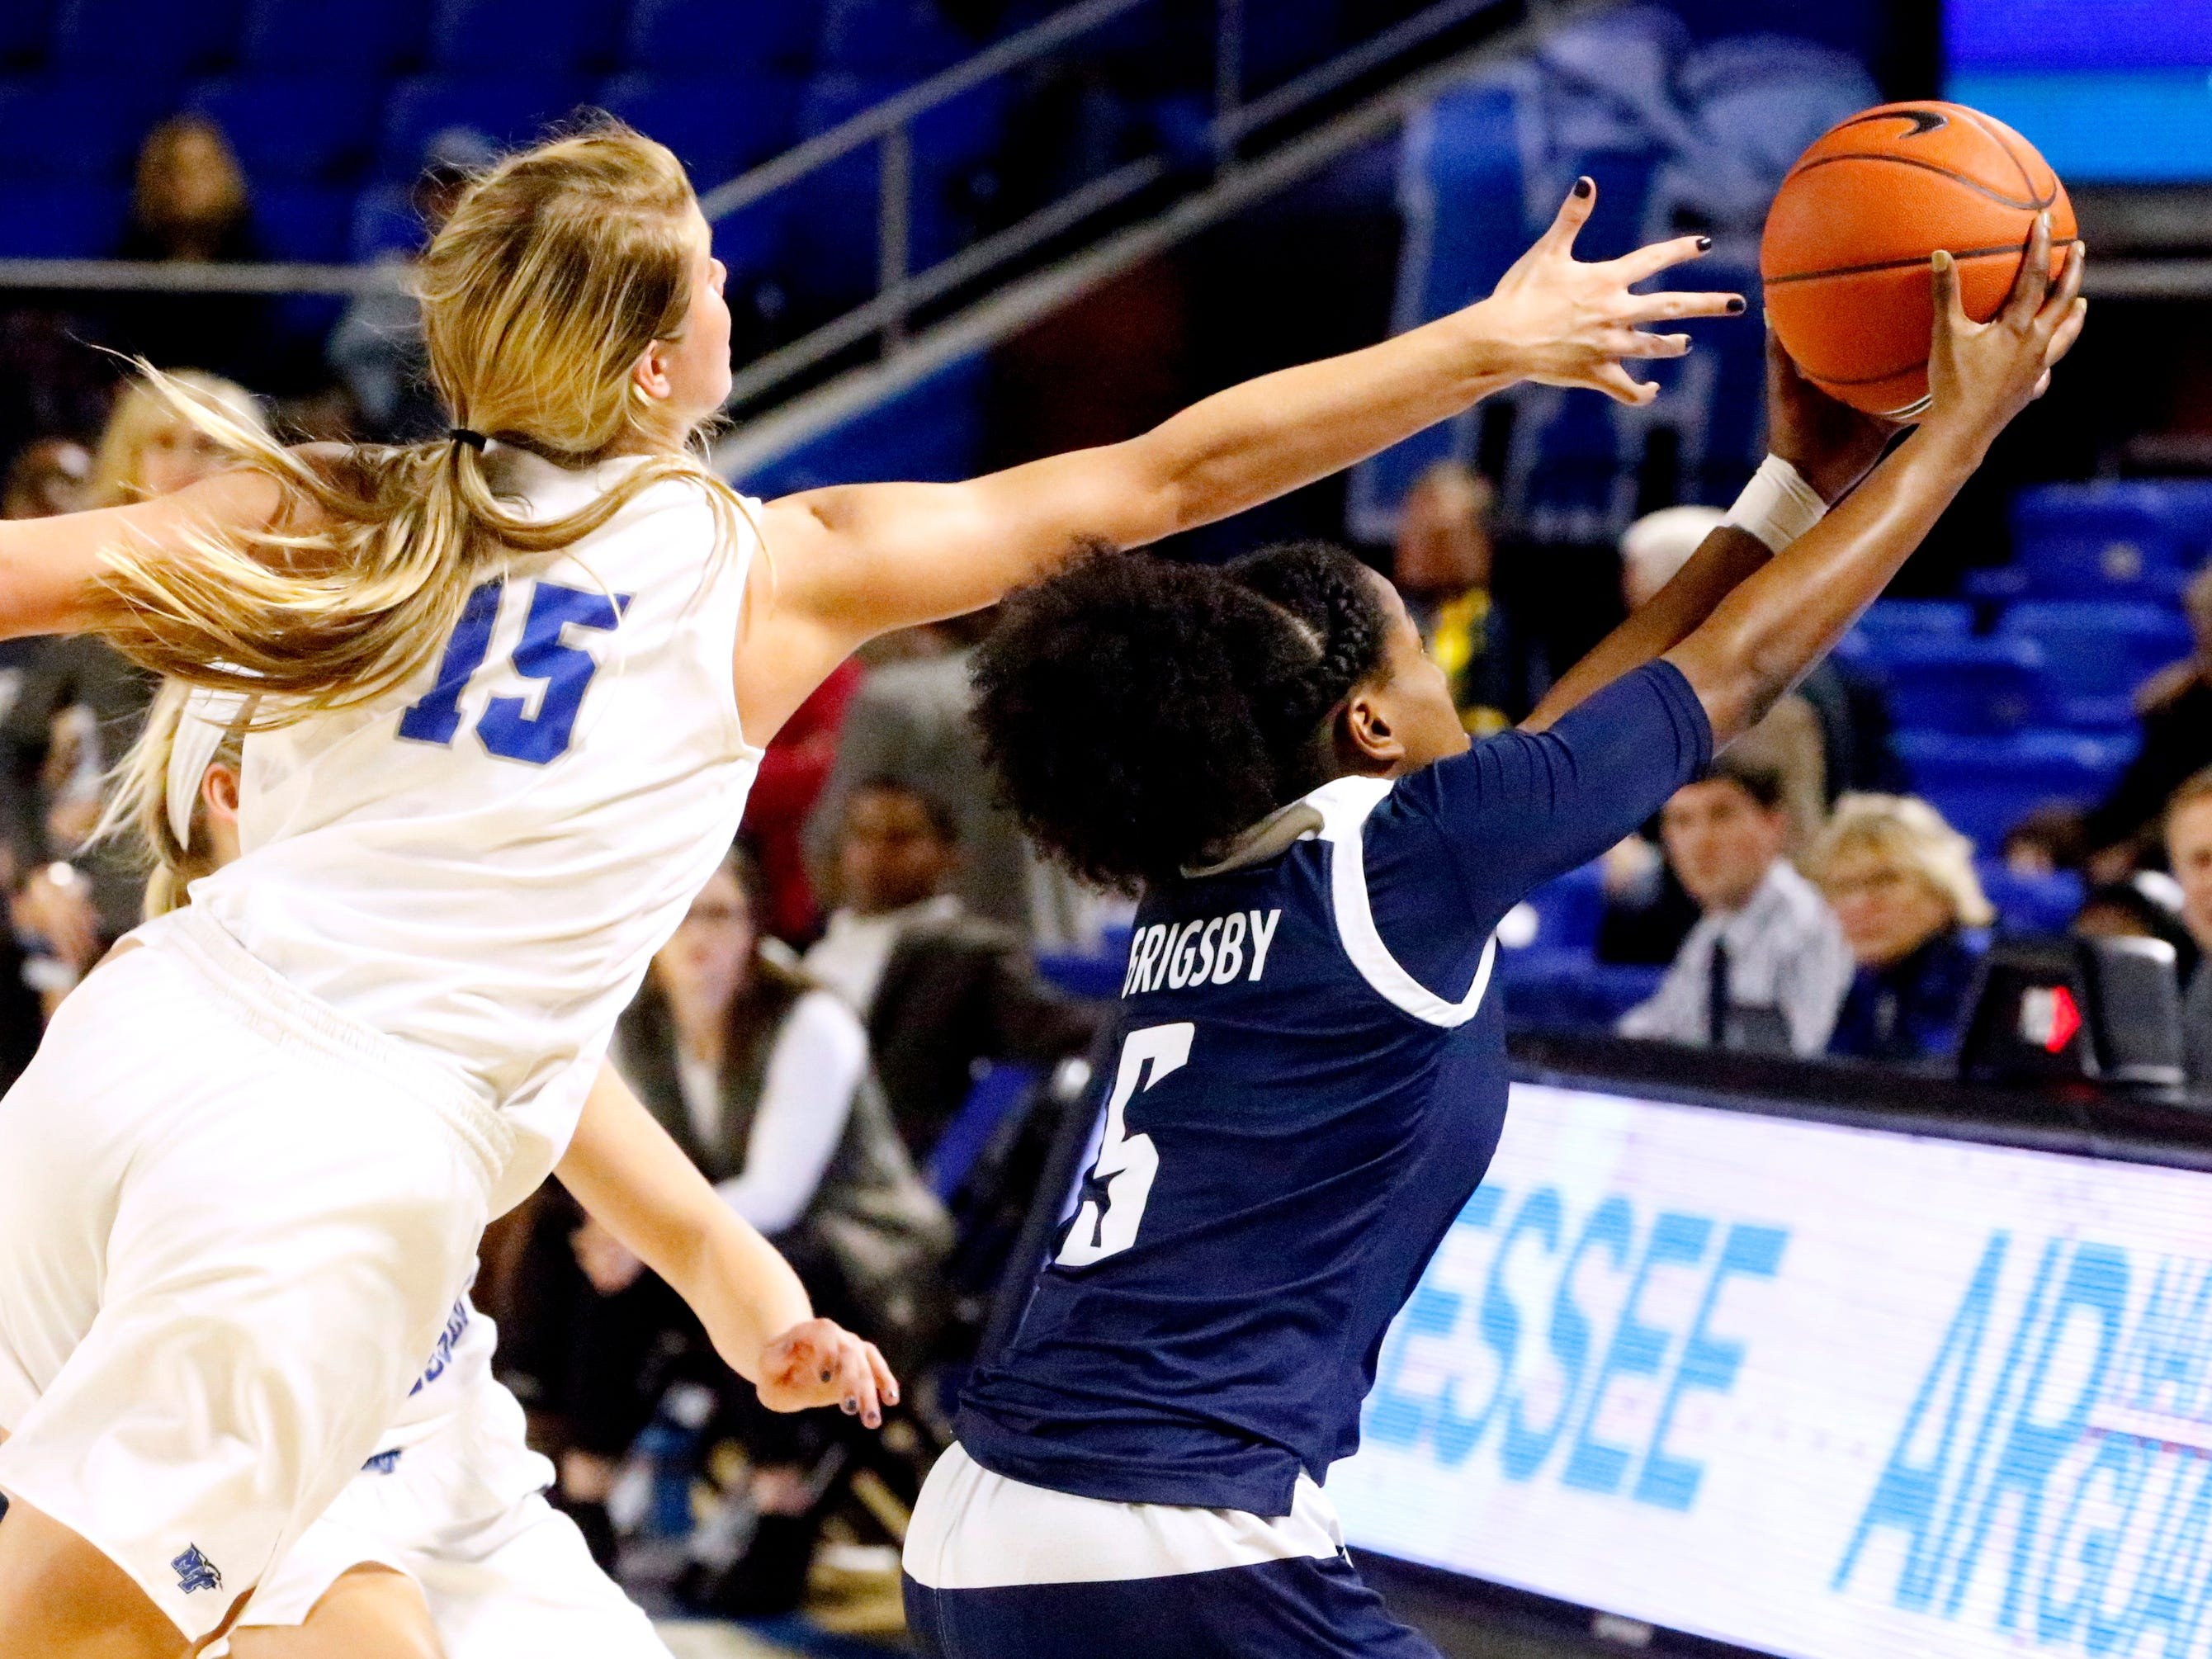 MTSU's guard Anna Jones (15) and Rice's guard Lauren Grigsby (5) both go after a pass intended for Grigsby on Thursday Jan. 24, 2019.